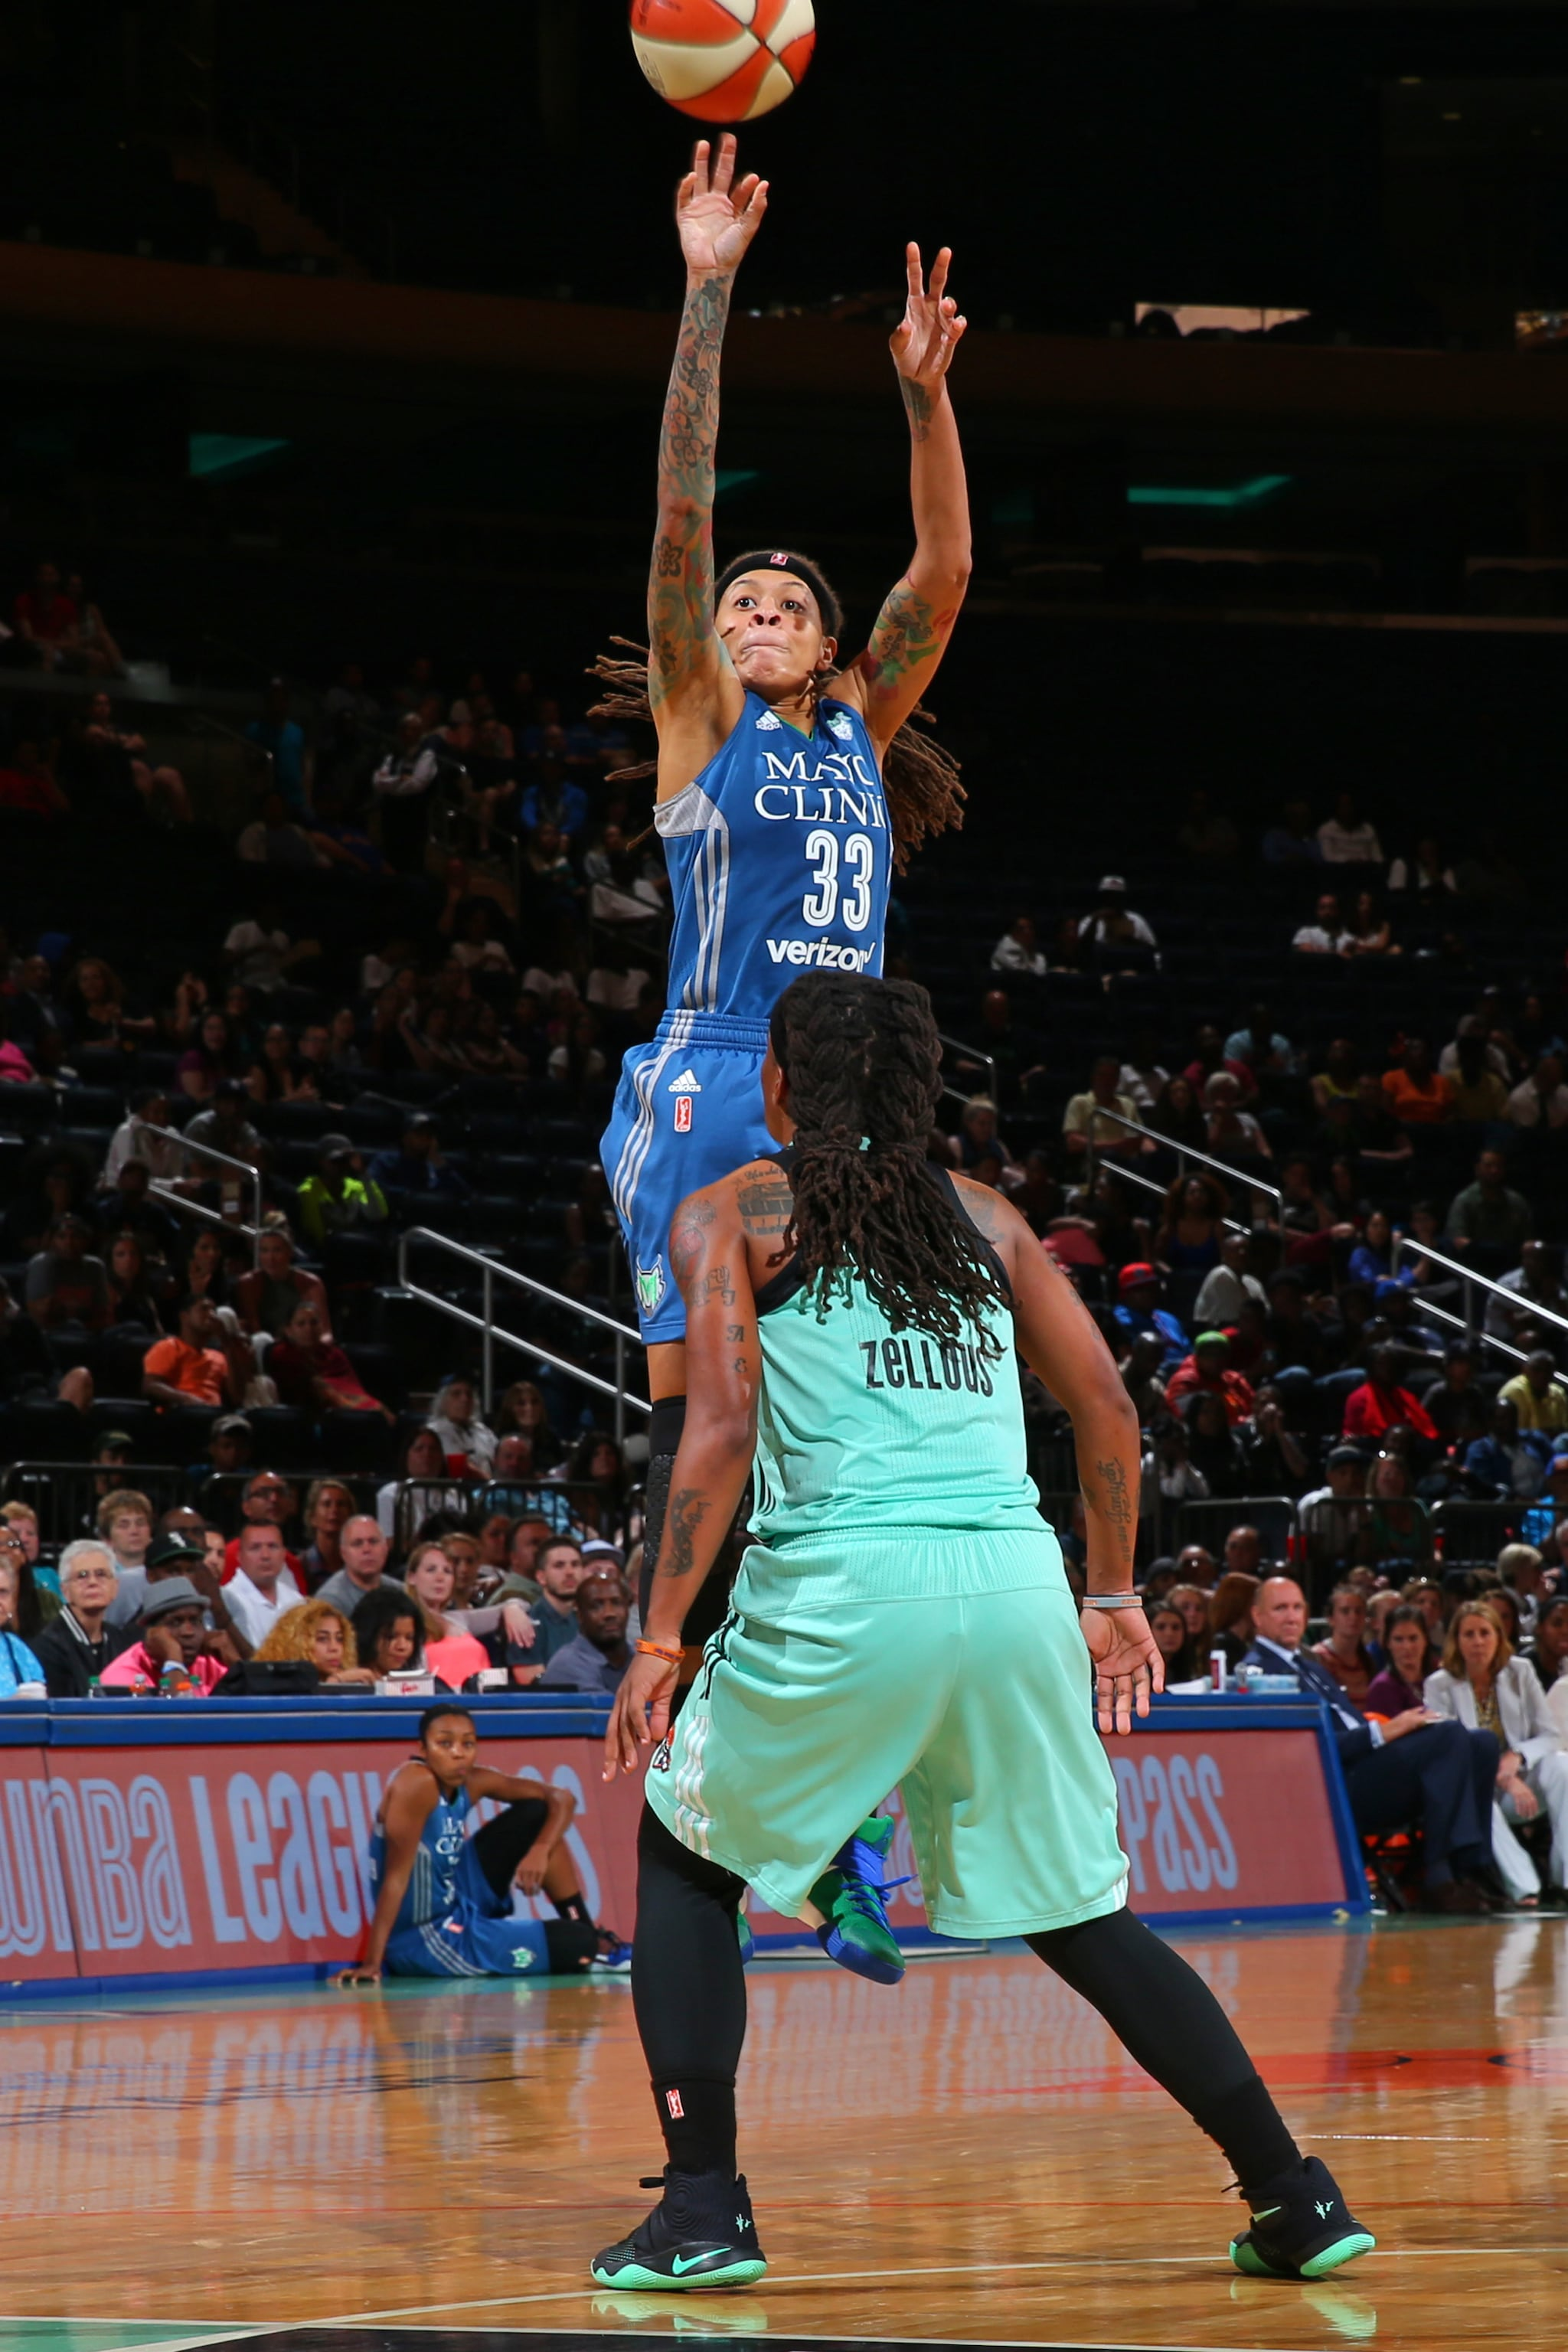 NEW YORK, NY - MAY 31:  Seimone Augustus #33 of the Minnesota Lynx shoots the ball against the New York Liberty during the game on May 31, 2016 at Madison Square Garden in New York, New York. NOTE TO USER: User expressly acknowledges and agrees that, by downloading and or using this Photograph, user is consenting to the terms and conditions of the Getty Images License Agreement. Mandatory Copyright Notice: Copyright 2016 NBAE (Photo by Mike Stobe/NBAE via Getty Images)